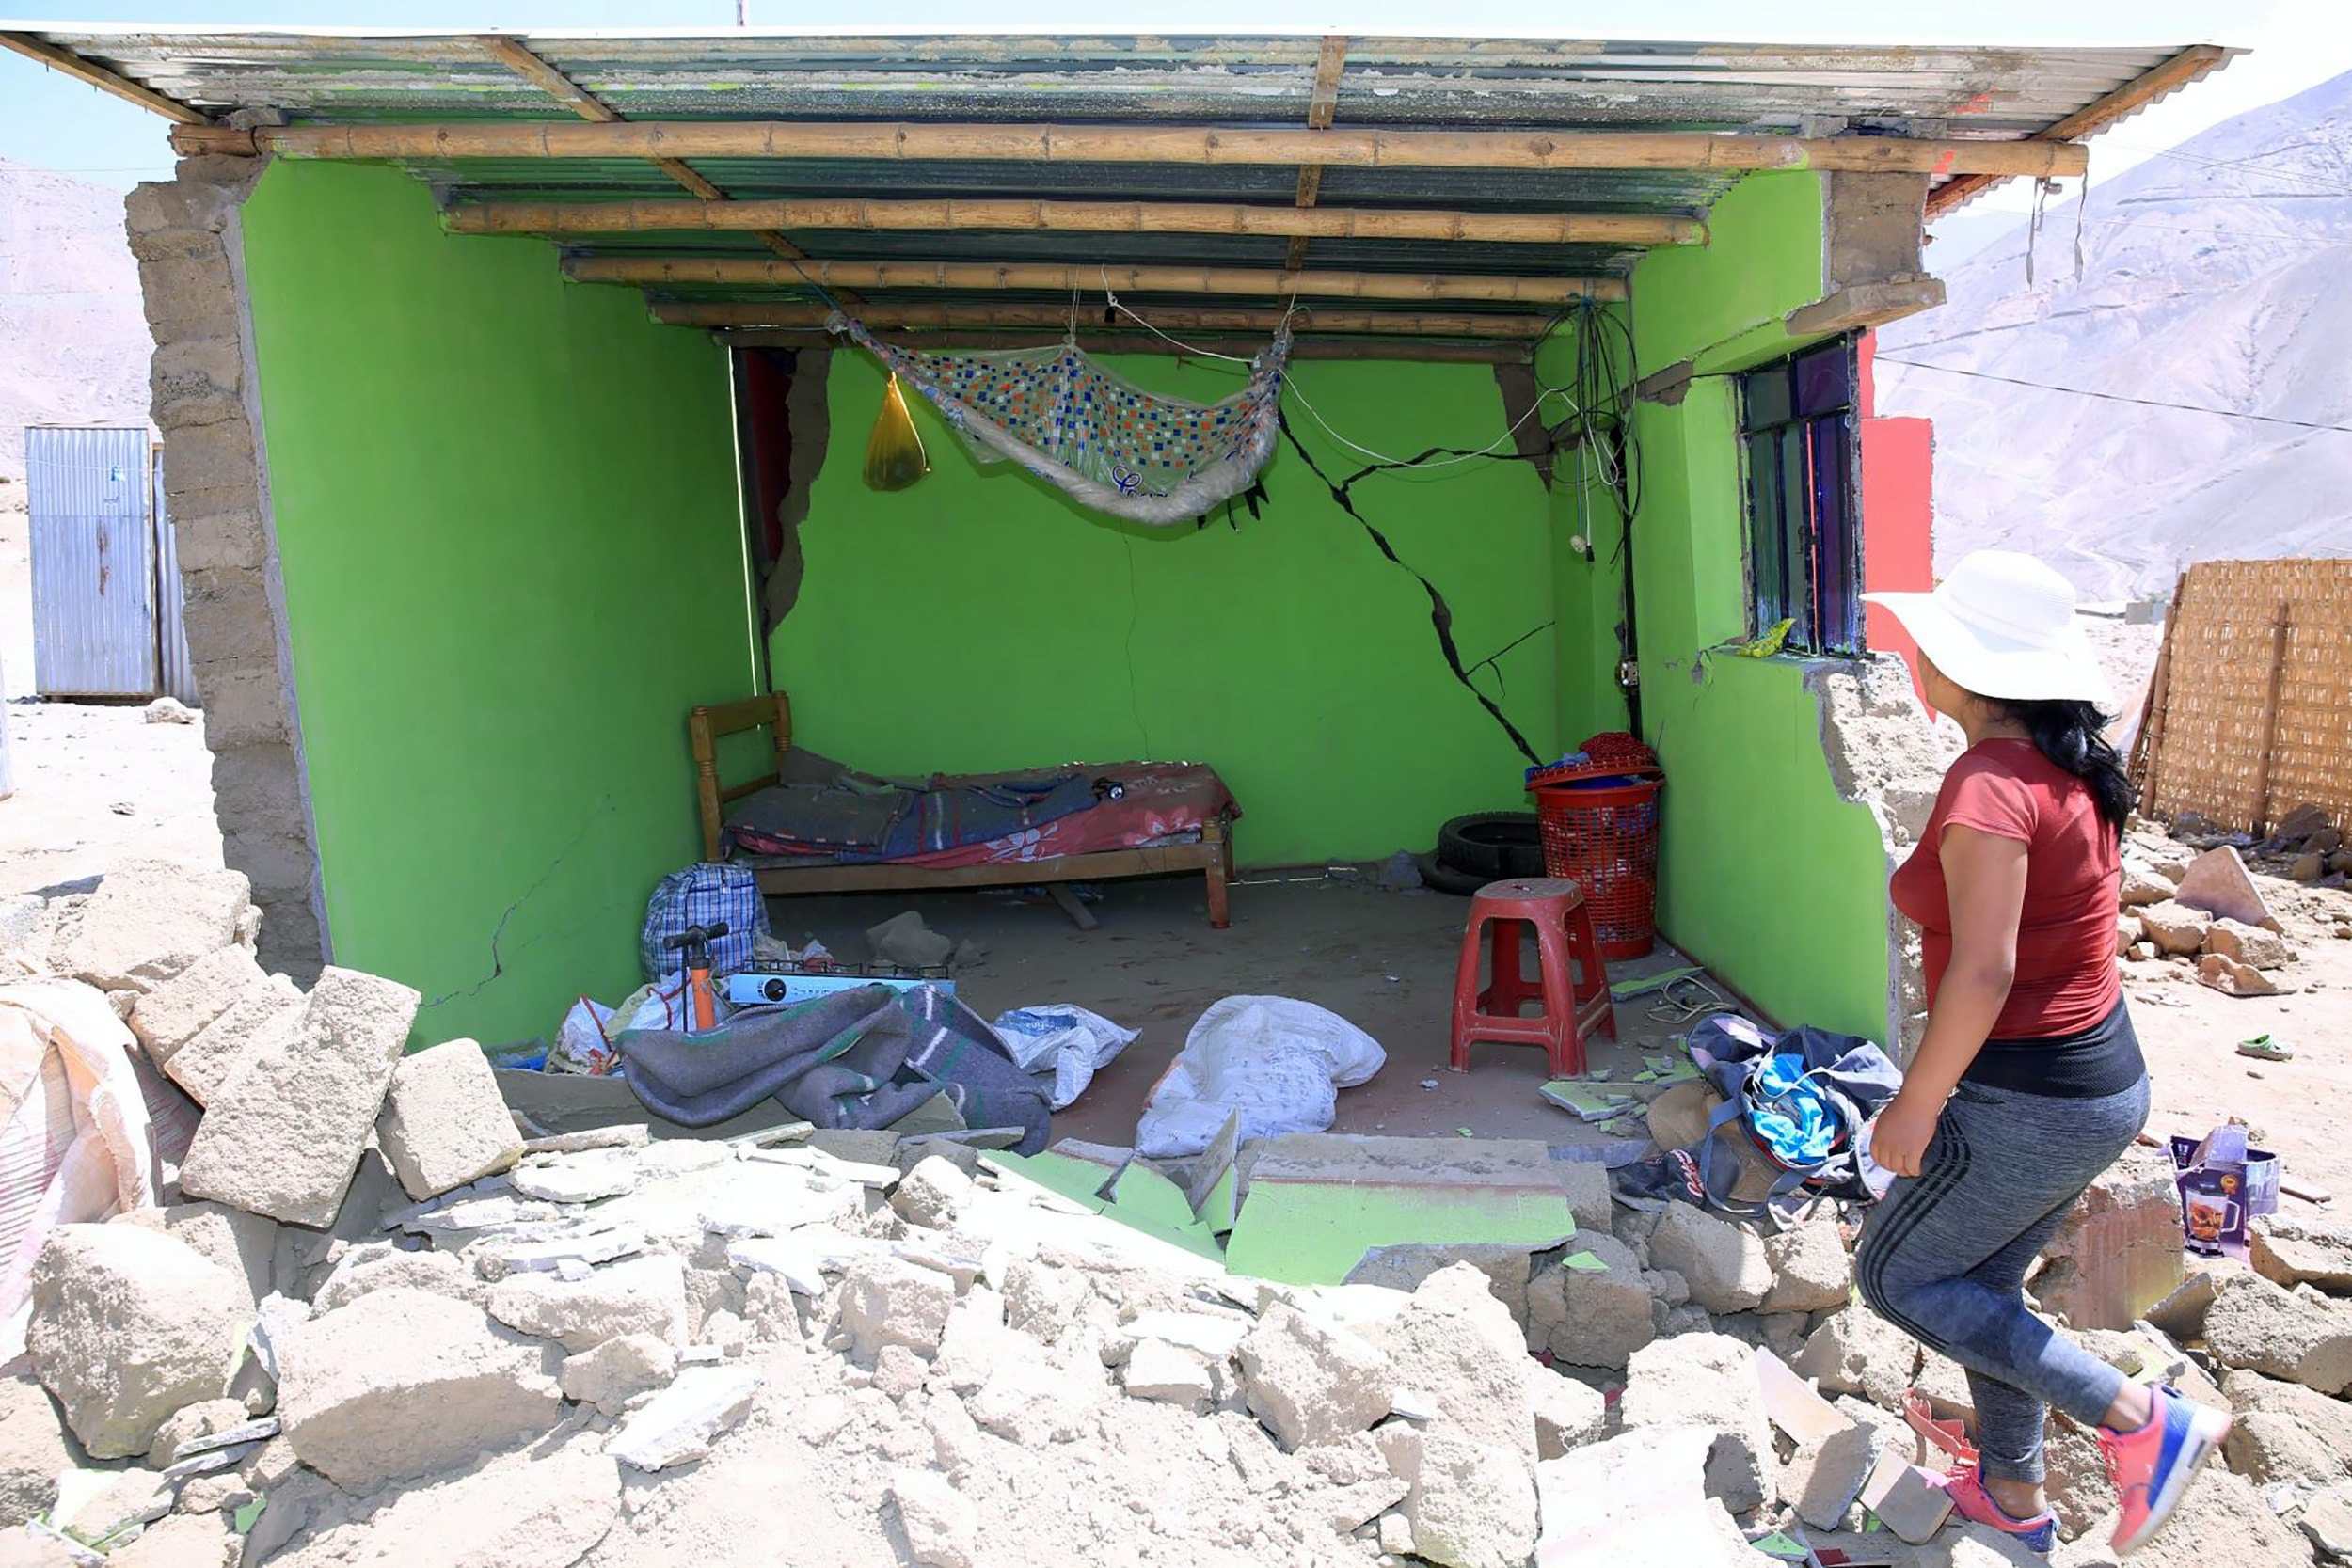 A handout photo made available by the Andina Agency shows a destroyed home in the town of Relave, in the province of Parinacochas, in the south of the department of Ayacucho, Peru, on 14 January 2018.